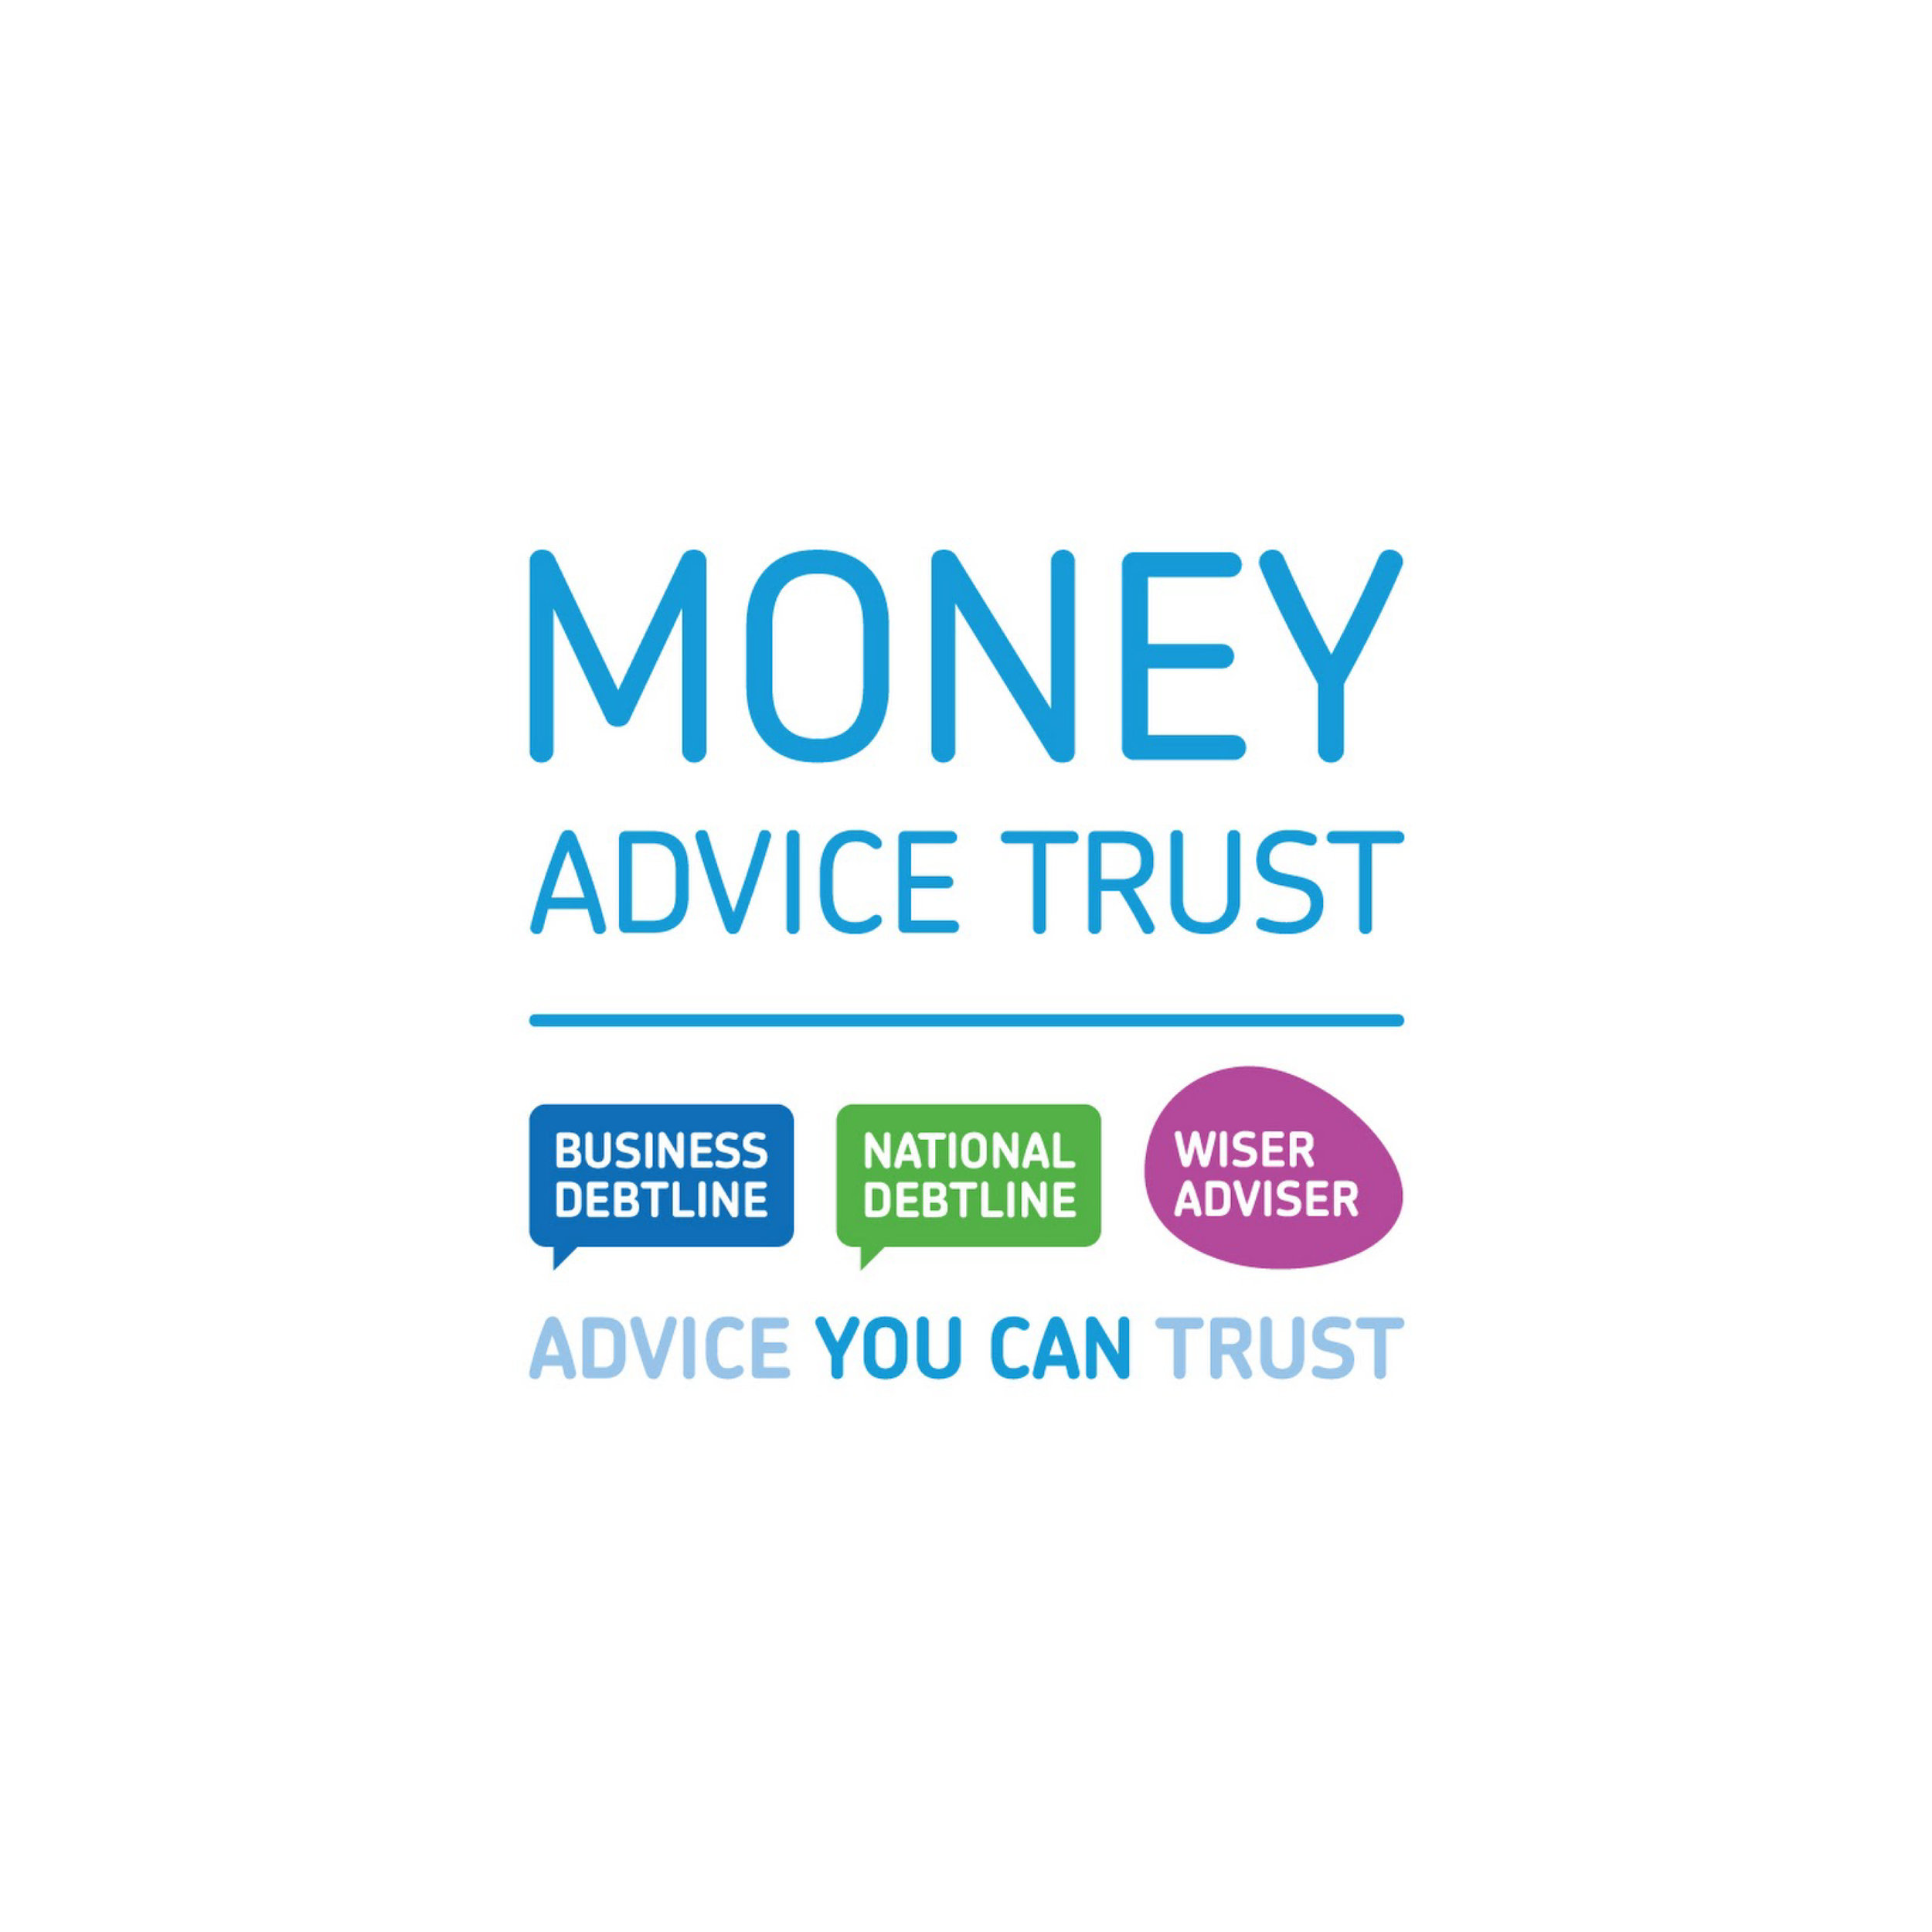 money-advice-trust-3 website.jpg